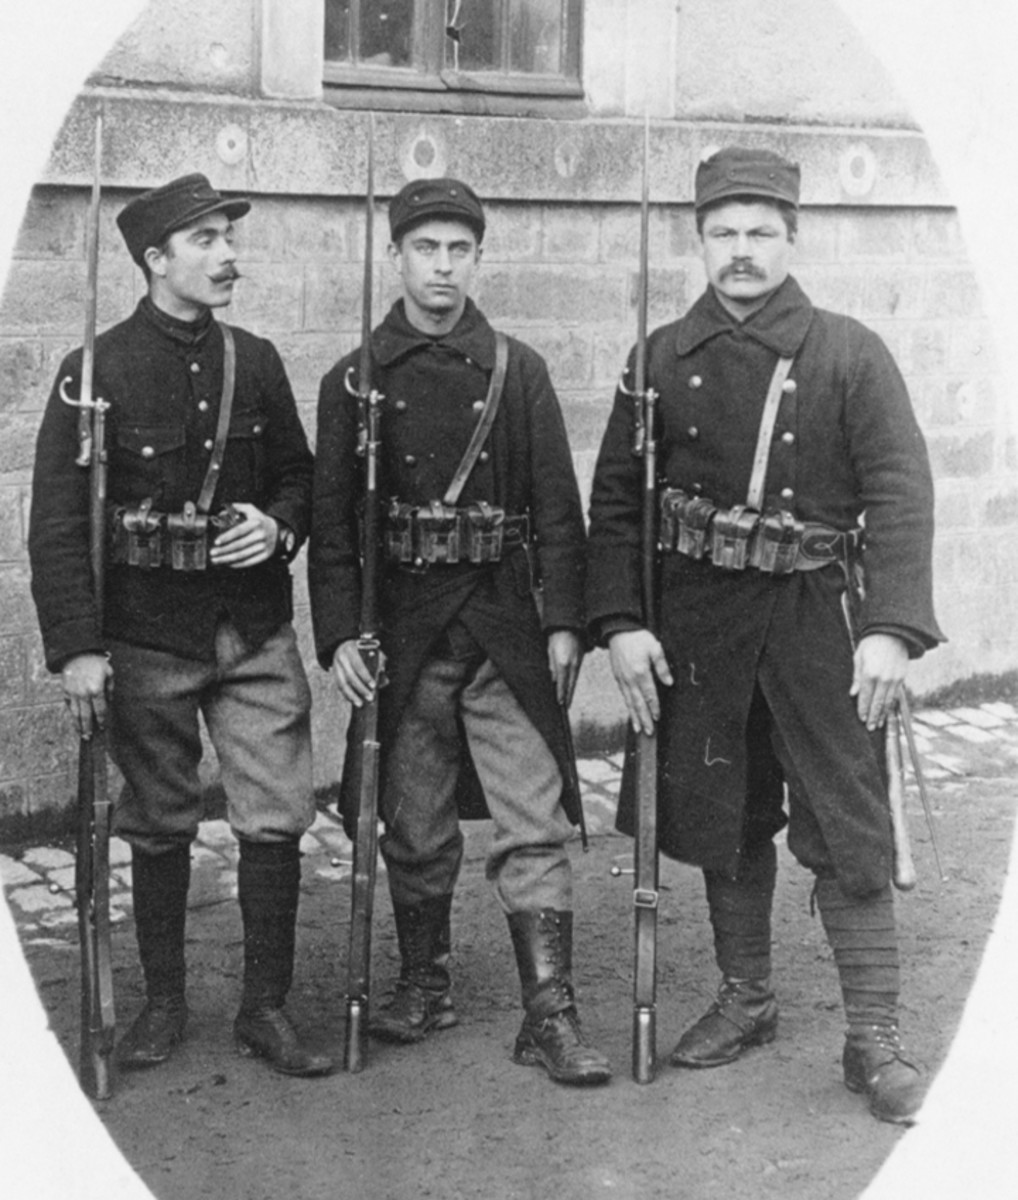 Figure 7. These three Belgian soldiers, who are wearing the transitional dark colored uniform (issued in 1915 before the introduction of the khaki colored uniform) are armed with the modified Model 1889 Mauser rifles with the Belgian Model 1874/89 Gras bayonet affixed..